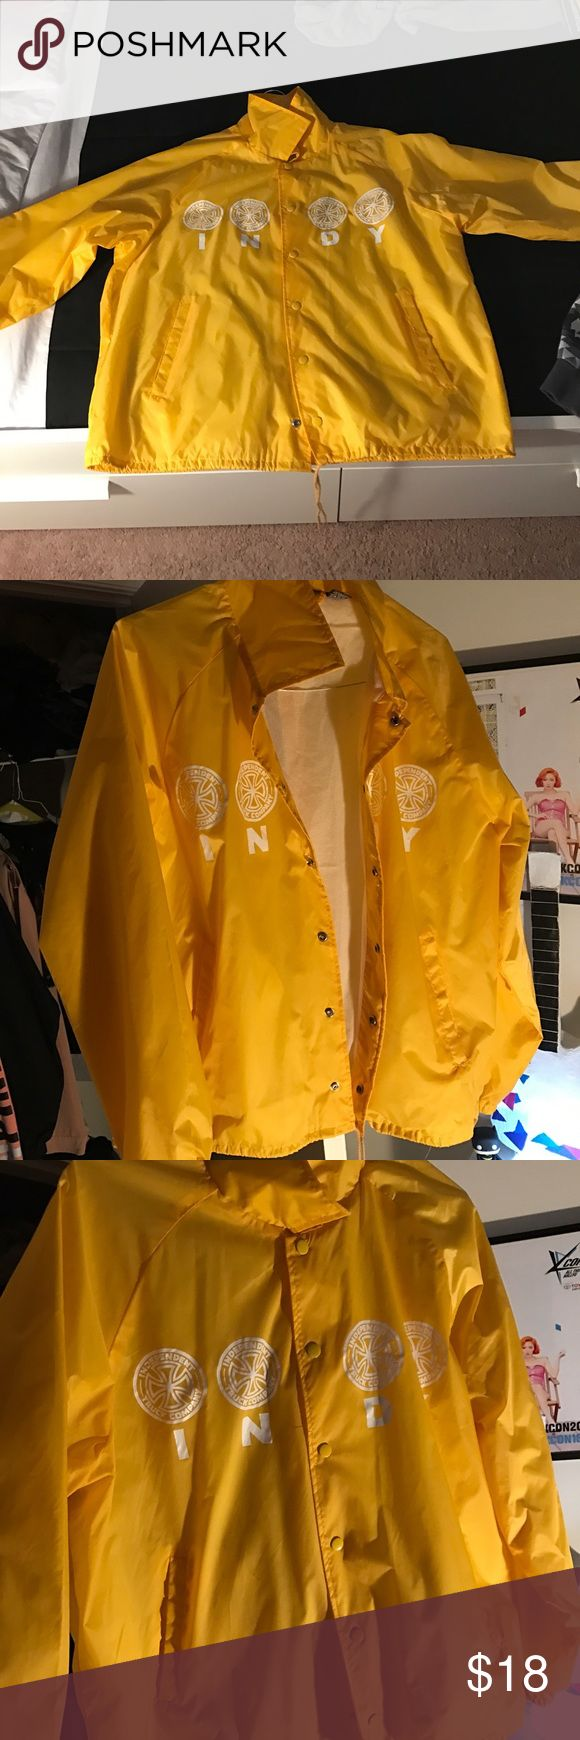 Independent truck jacket FOR SALE 😁 Men's Indy rain jacket. Size Large NOT WORN AT ALL. Jackets & Coats Raincoats